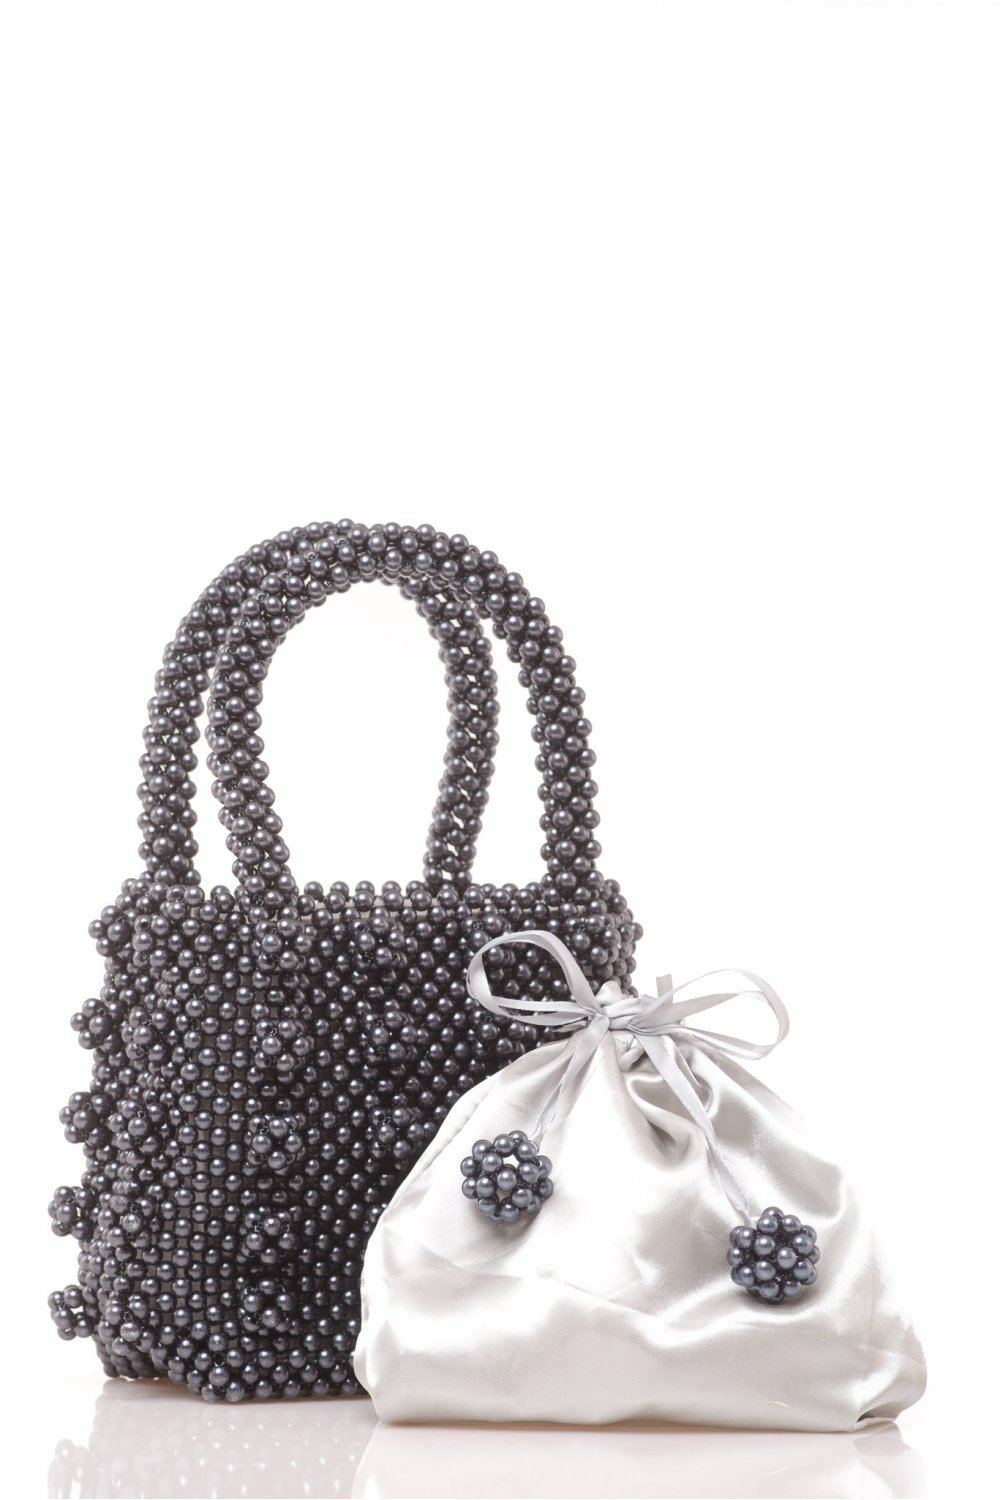 HANDMADE BAG WITH BLACK PEARLS